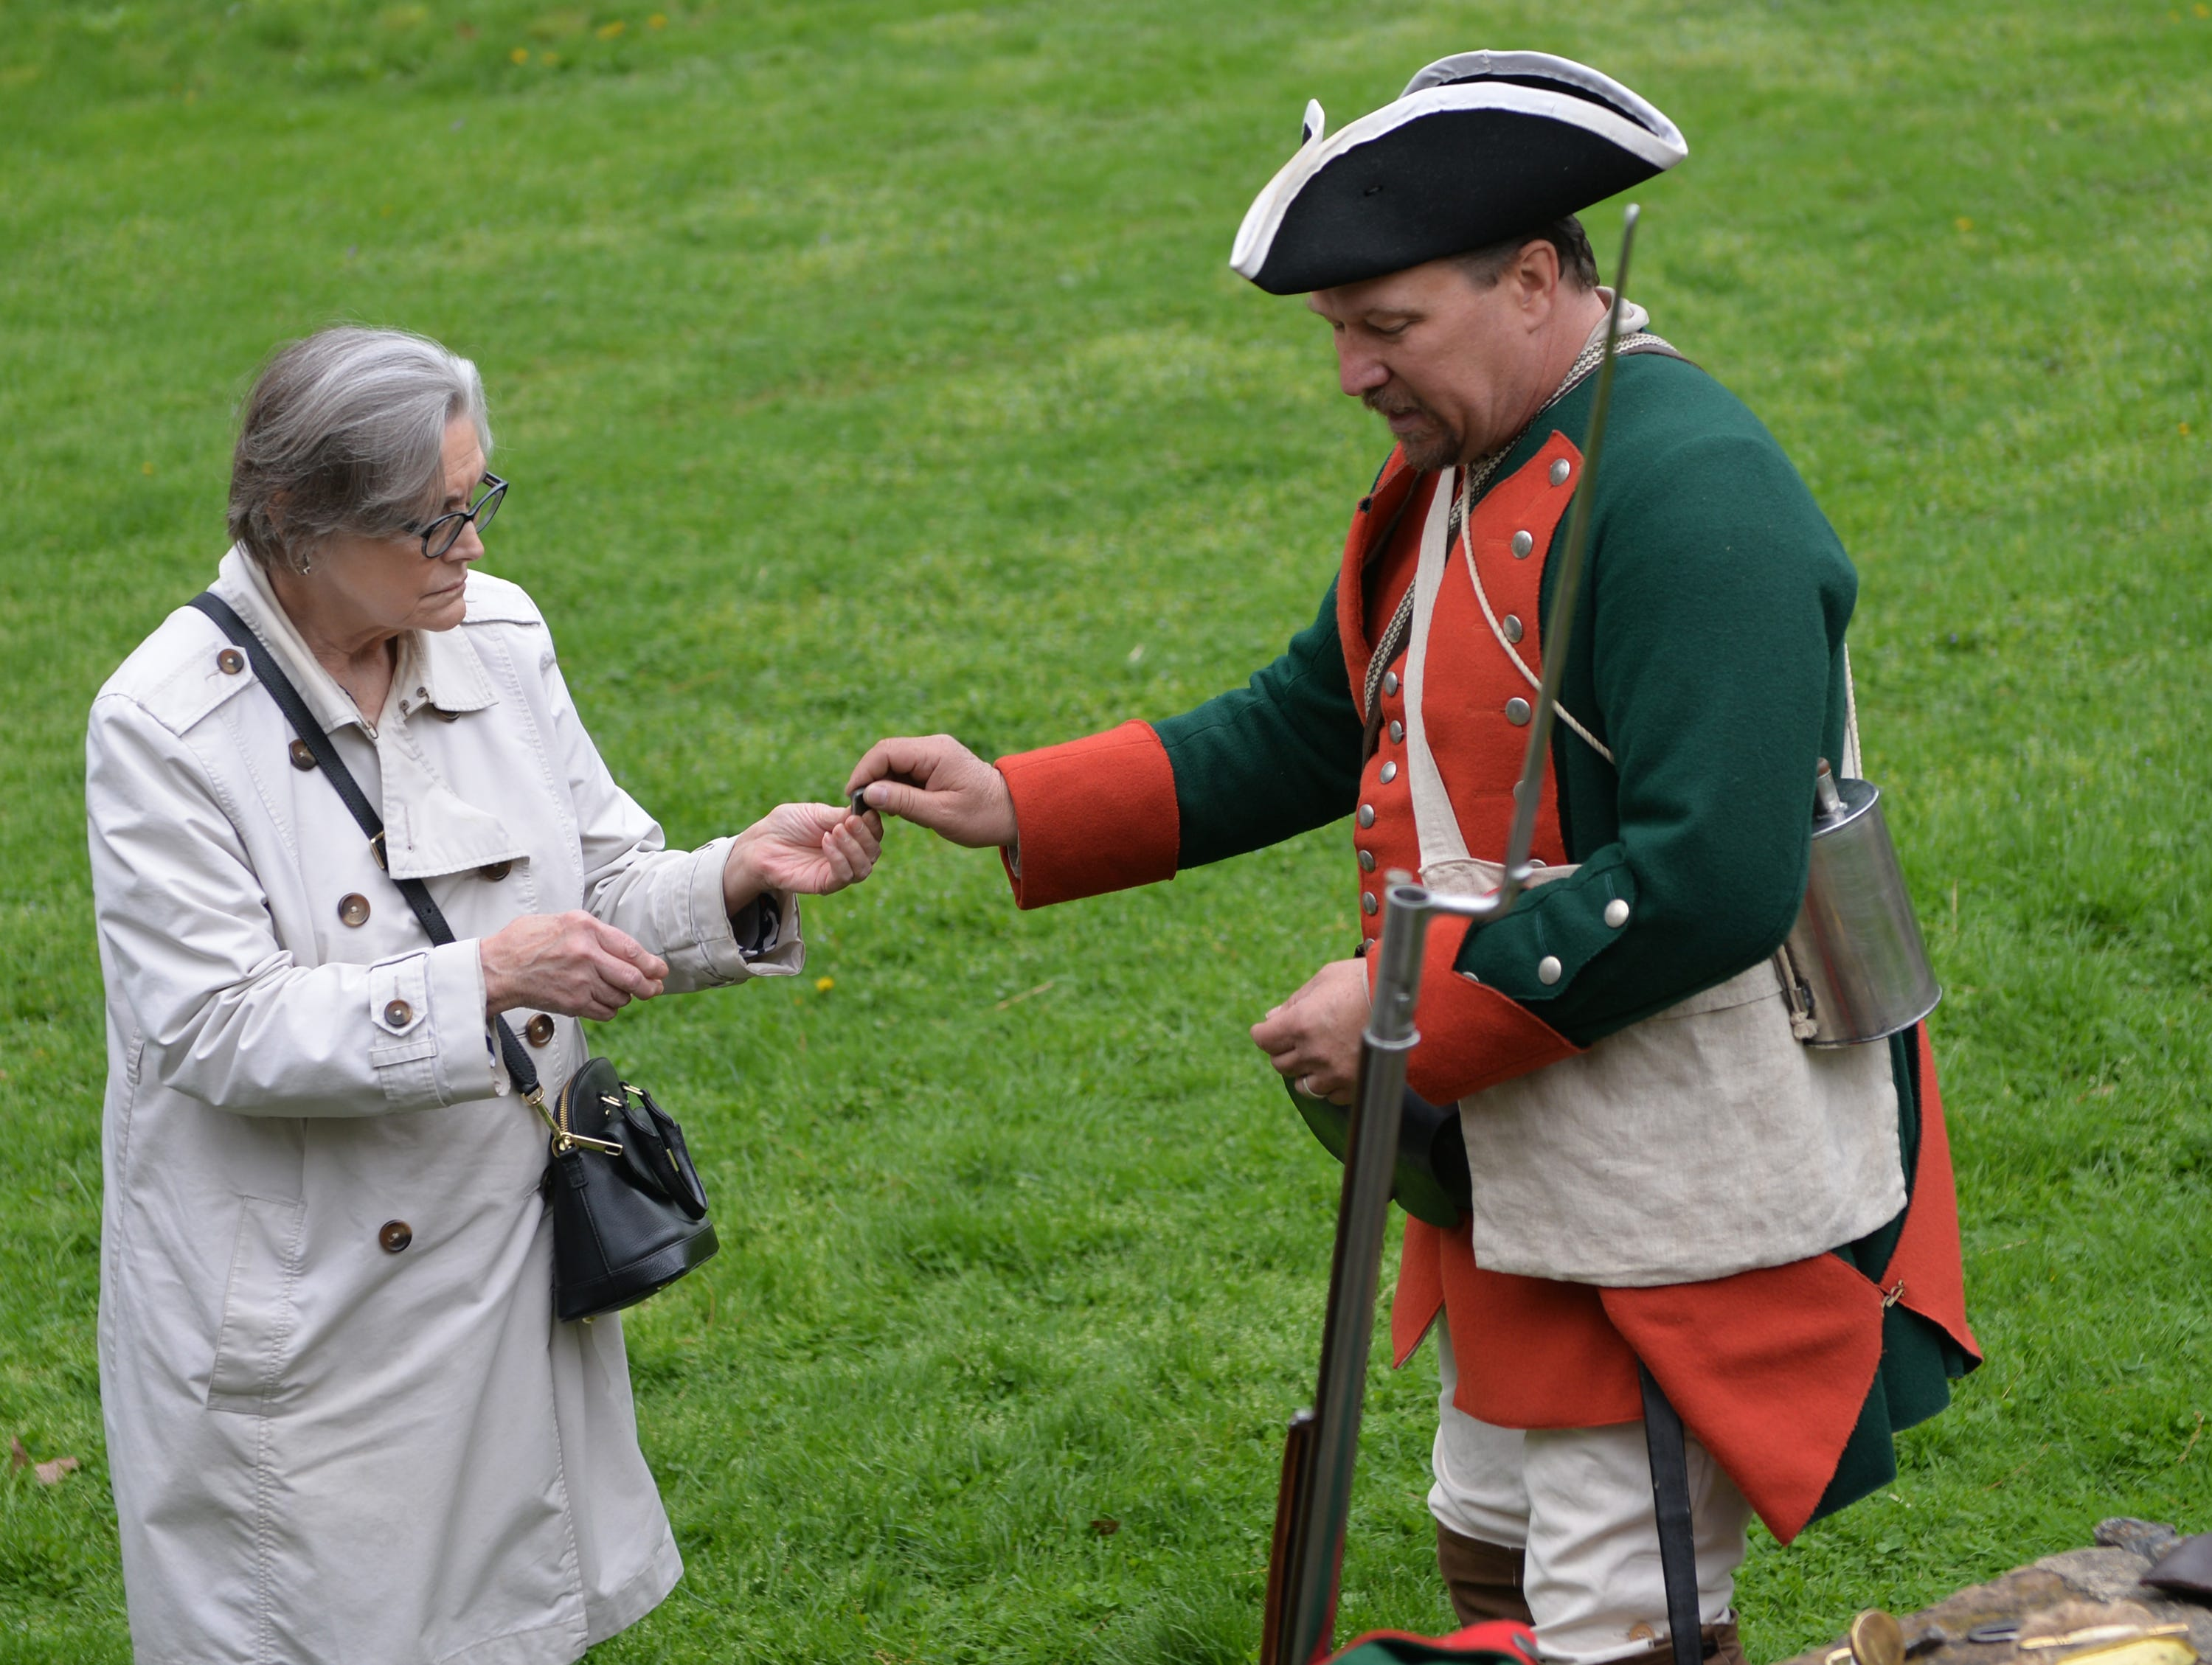 Rick Kramer portrays a soldier in Weiser's Battalion during Making Sense of History, a special living history program that focused on the senses, held at The Conrad Weiser Homestead at Womelsdorf, Pa on Sunday, April 28, 2019.